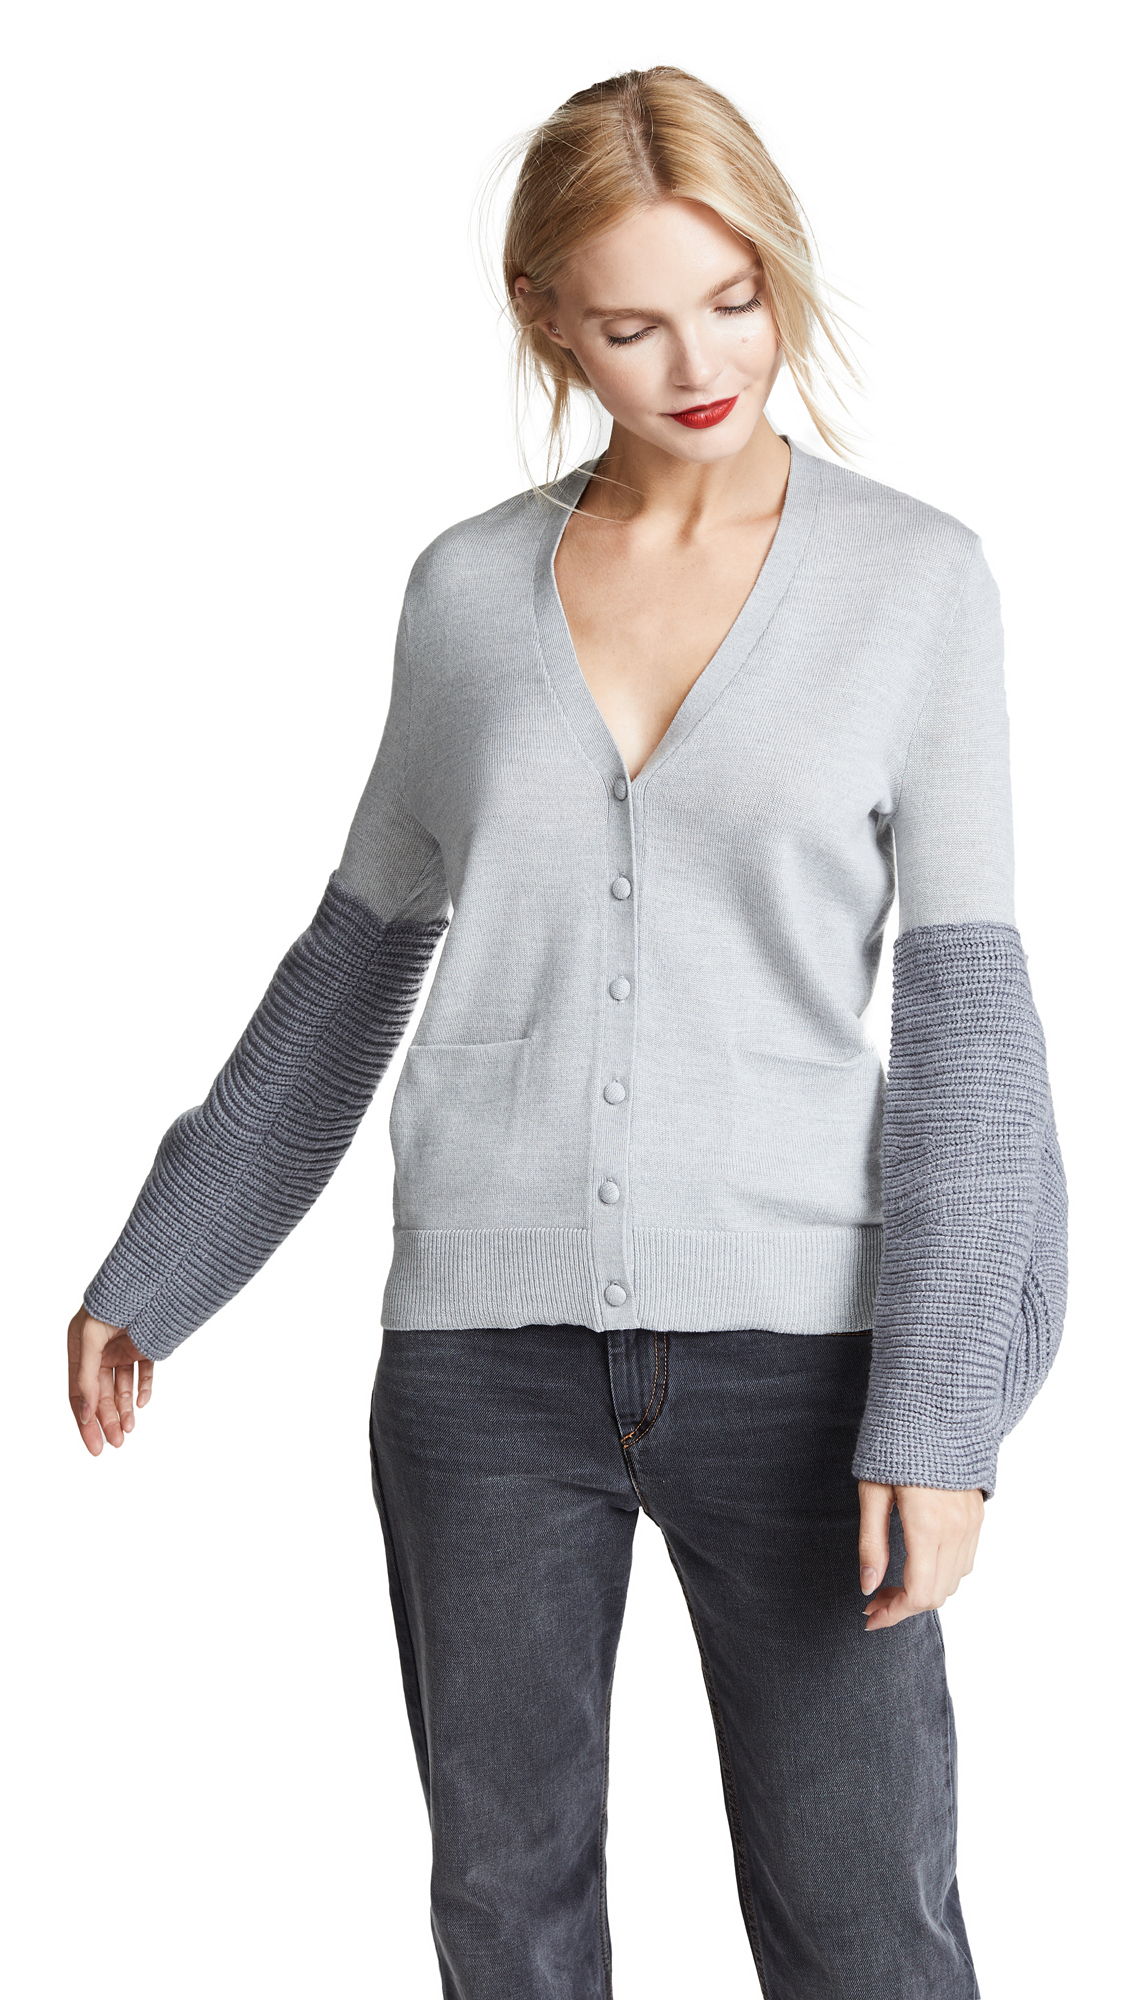 RHIE Magna Cardigan In Heather Grey